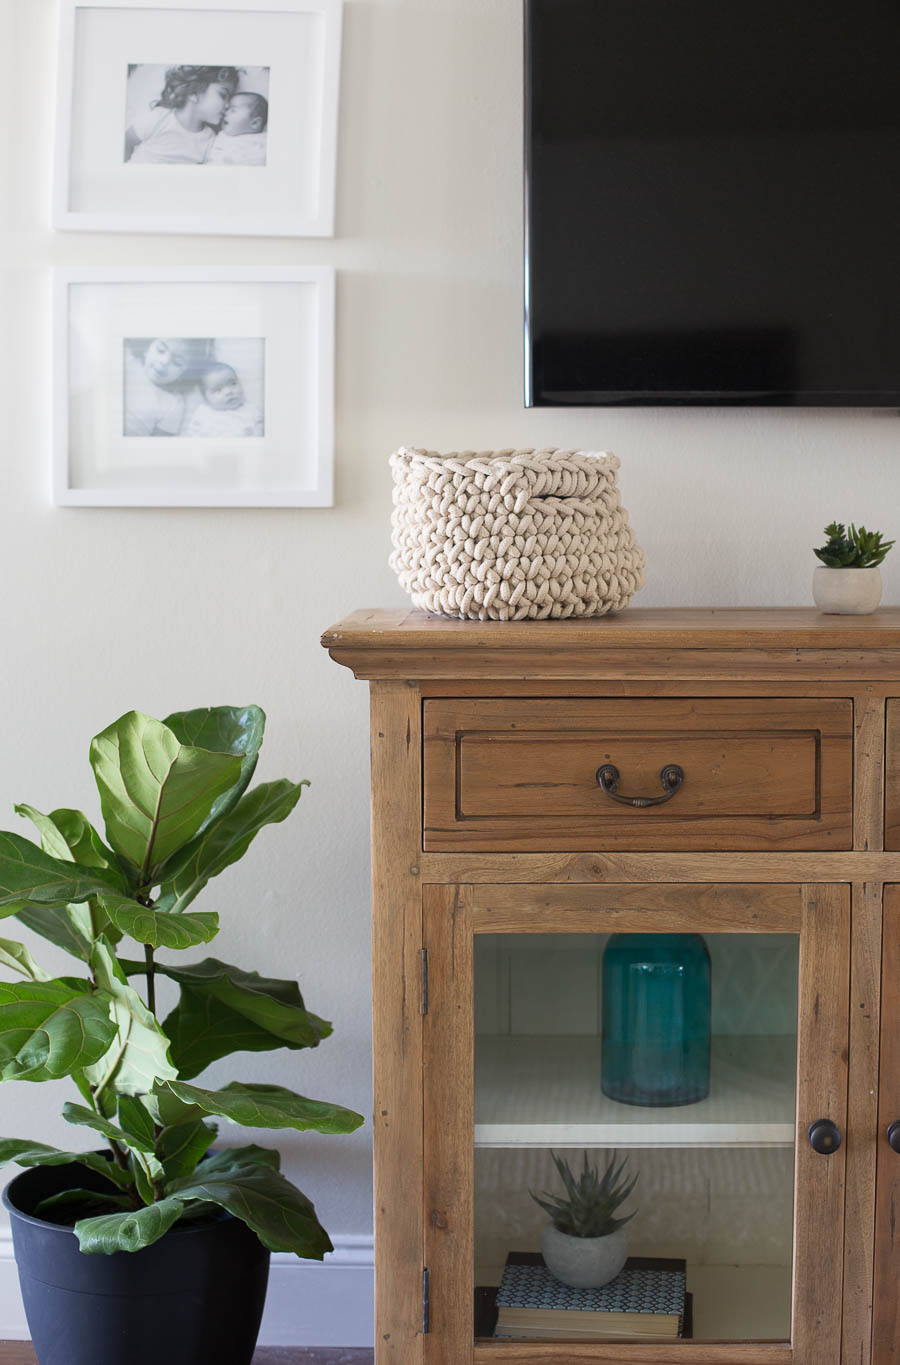 Apartment Decorating Ideas How To Decorate A Rental Like It S Your Own